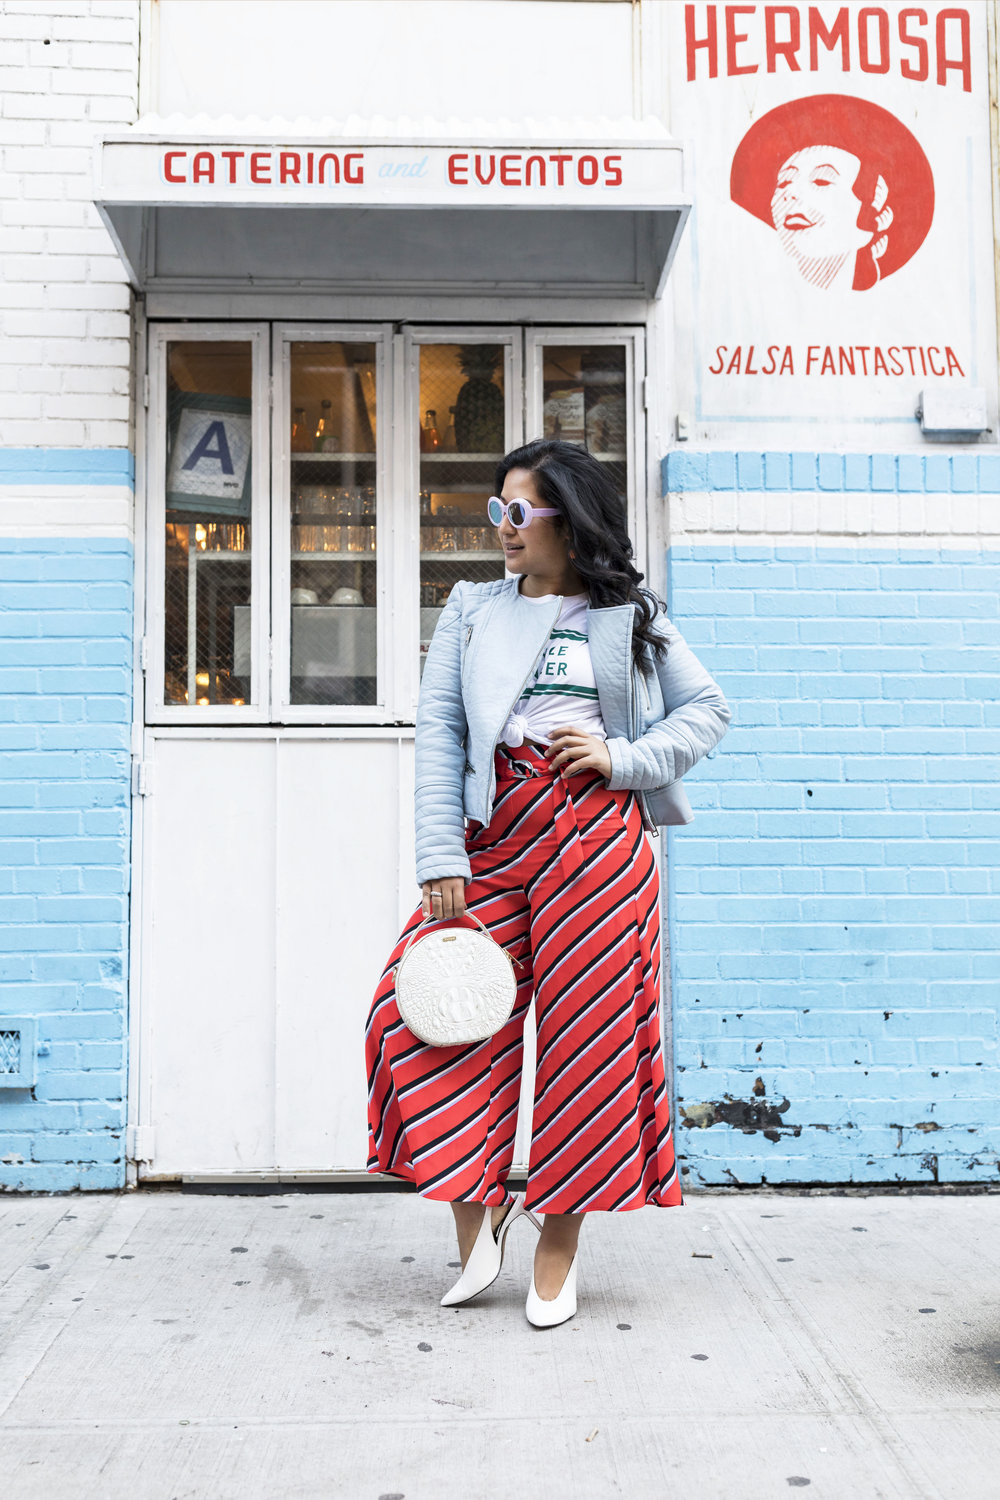 Krity S x Spring Culottes_3.jpg